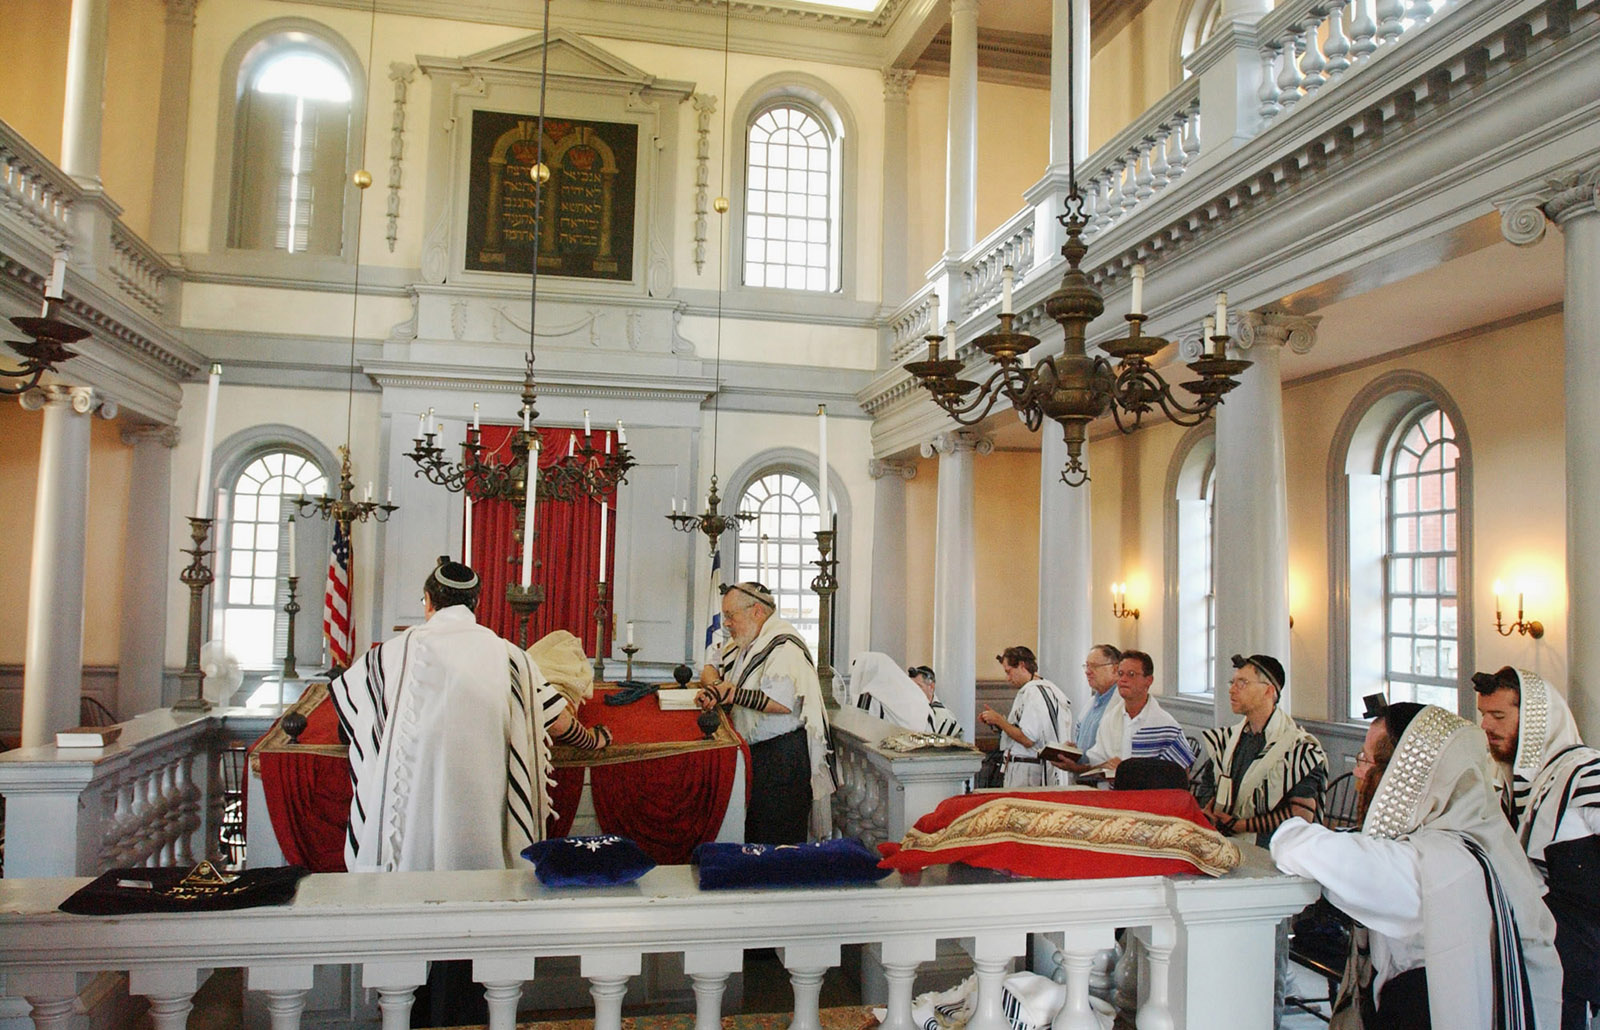 A daily service at Touro Synagogue, the centuries-old place of worship of the Jewish community of Rhode Island, which welcomed President George Washington as a visitor in 1790 and gave rise to his famous letter about religious freedom, Newport, 2004